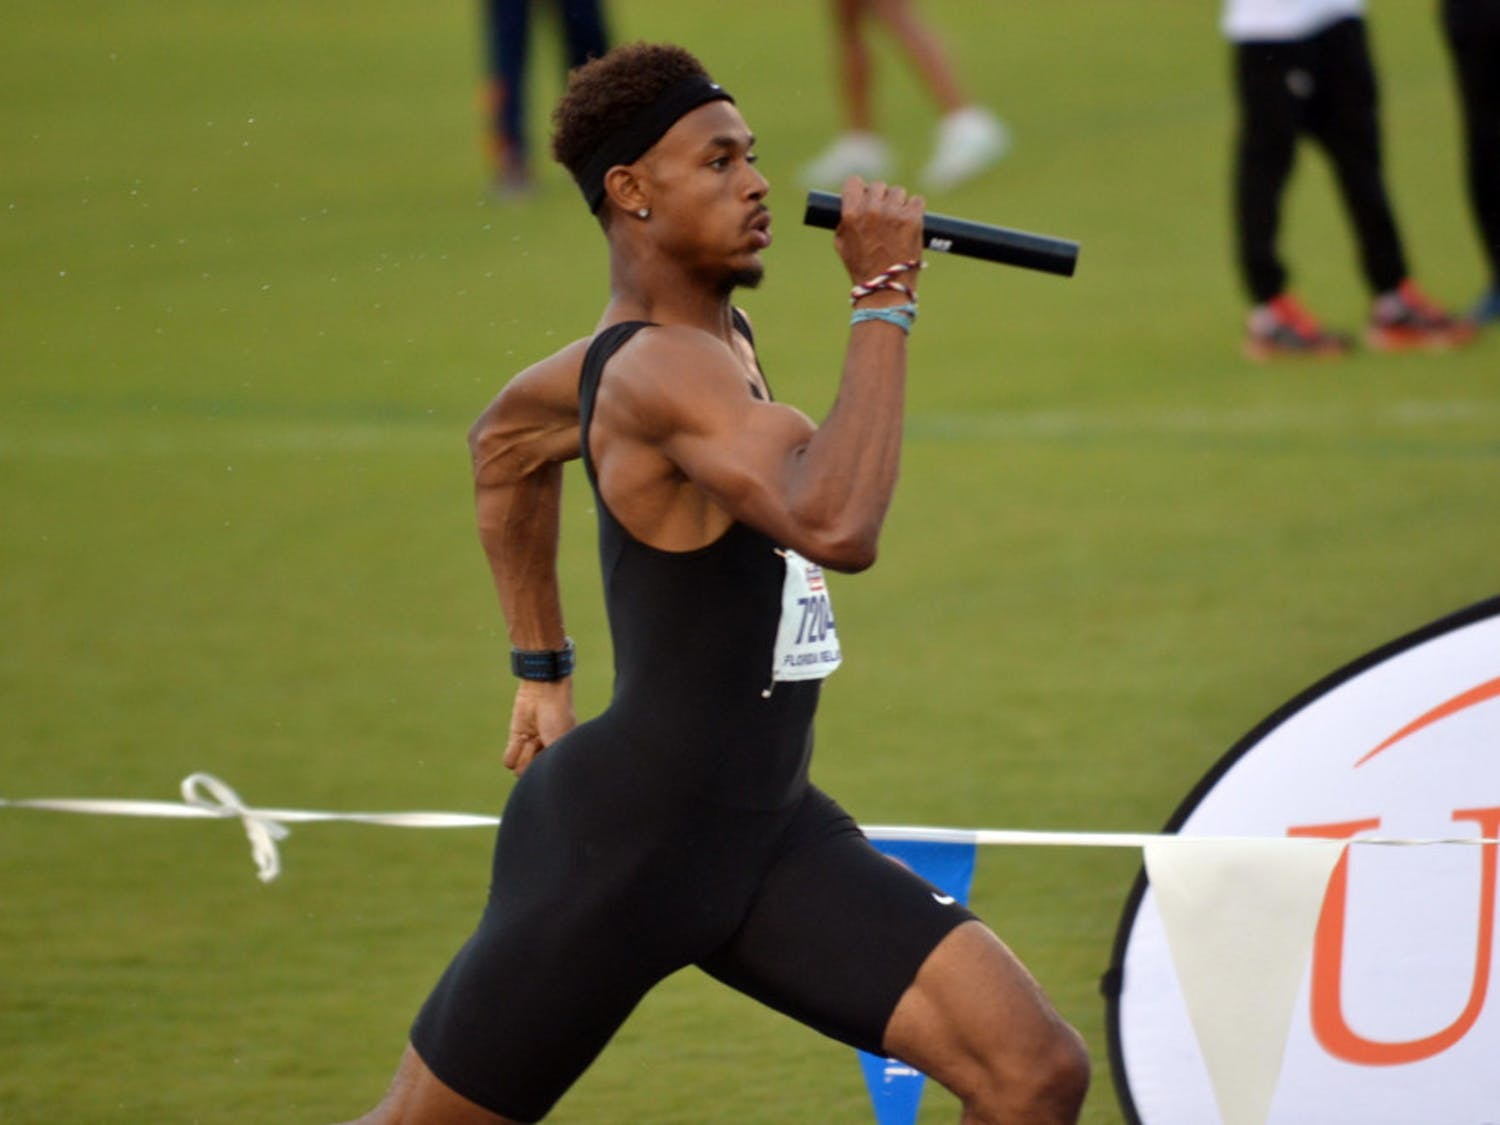 Najee Glass races in the 4x400-meter dash to close out the 2015 Florida Relays on April 4 at the Percy Beard Track.